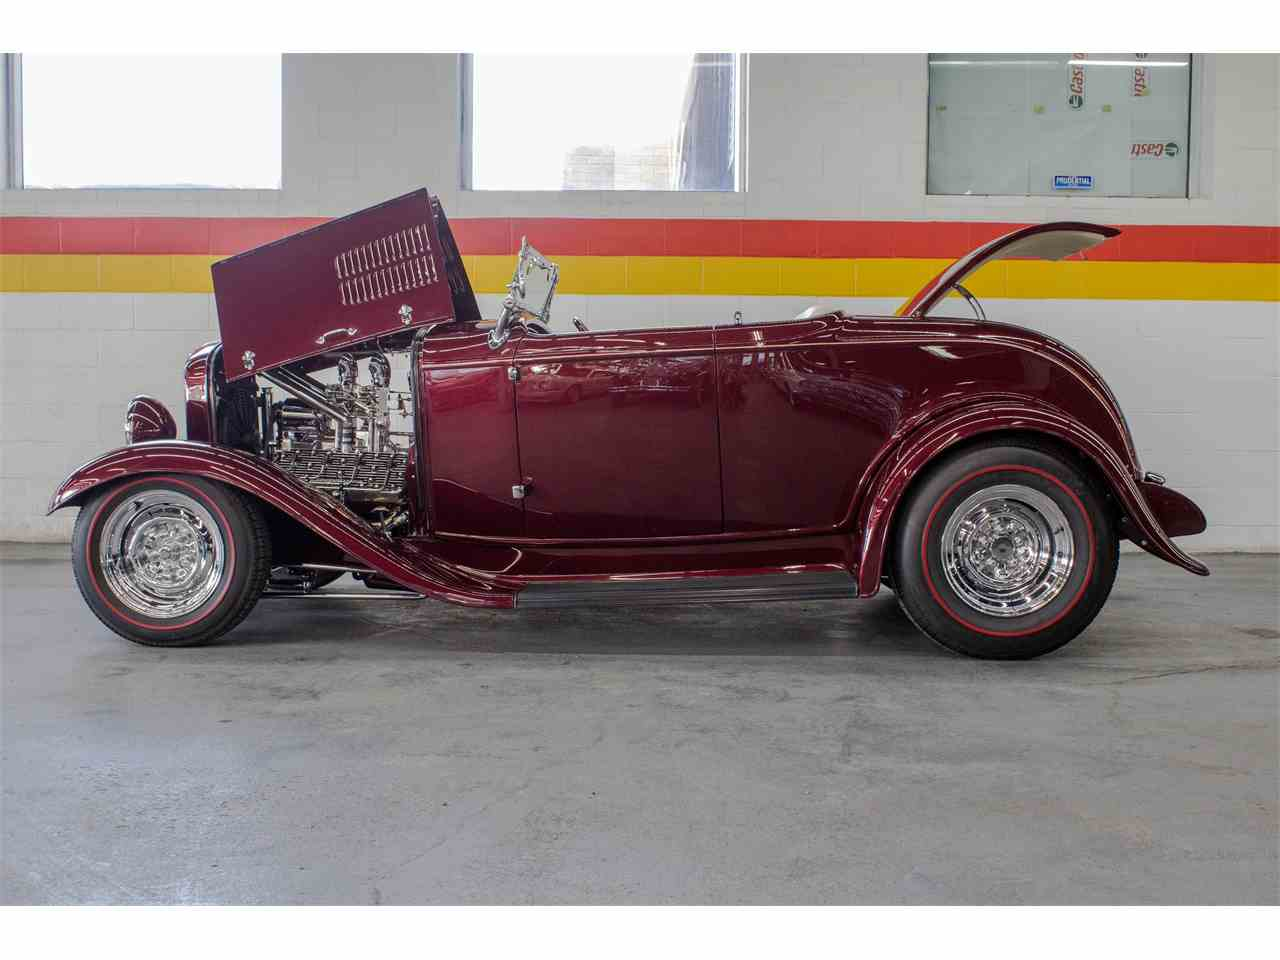 Large Picture of Classic '32 Ford Hot Rod located in MONTREAL Quebec - $139,995.00 - MSAV